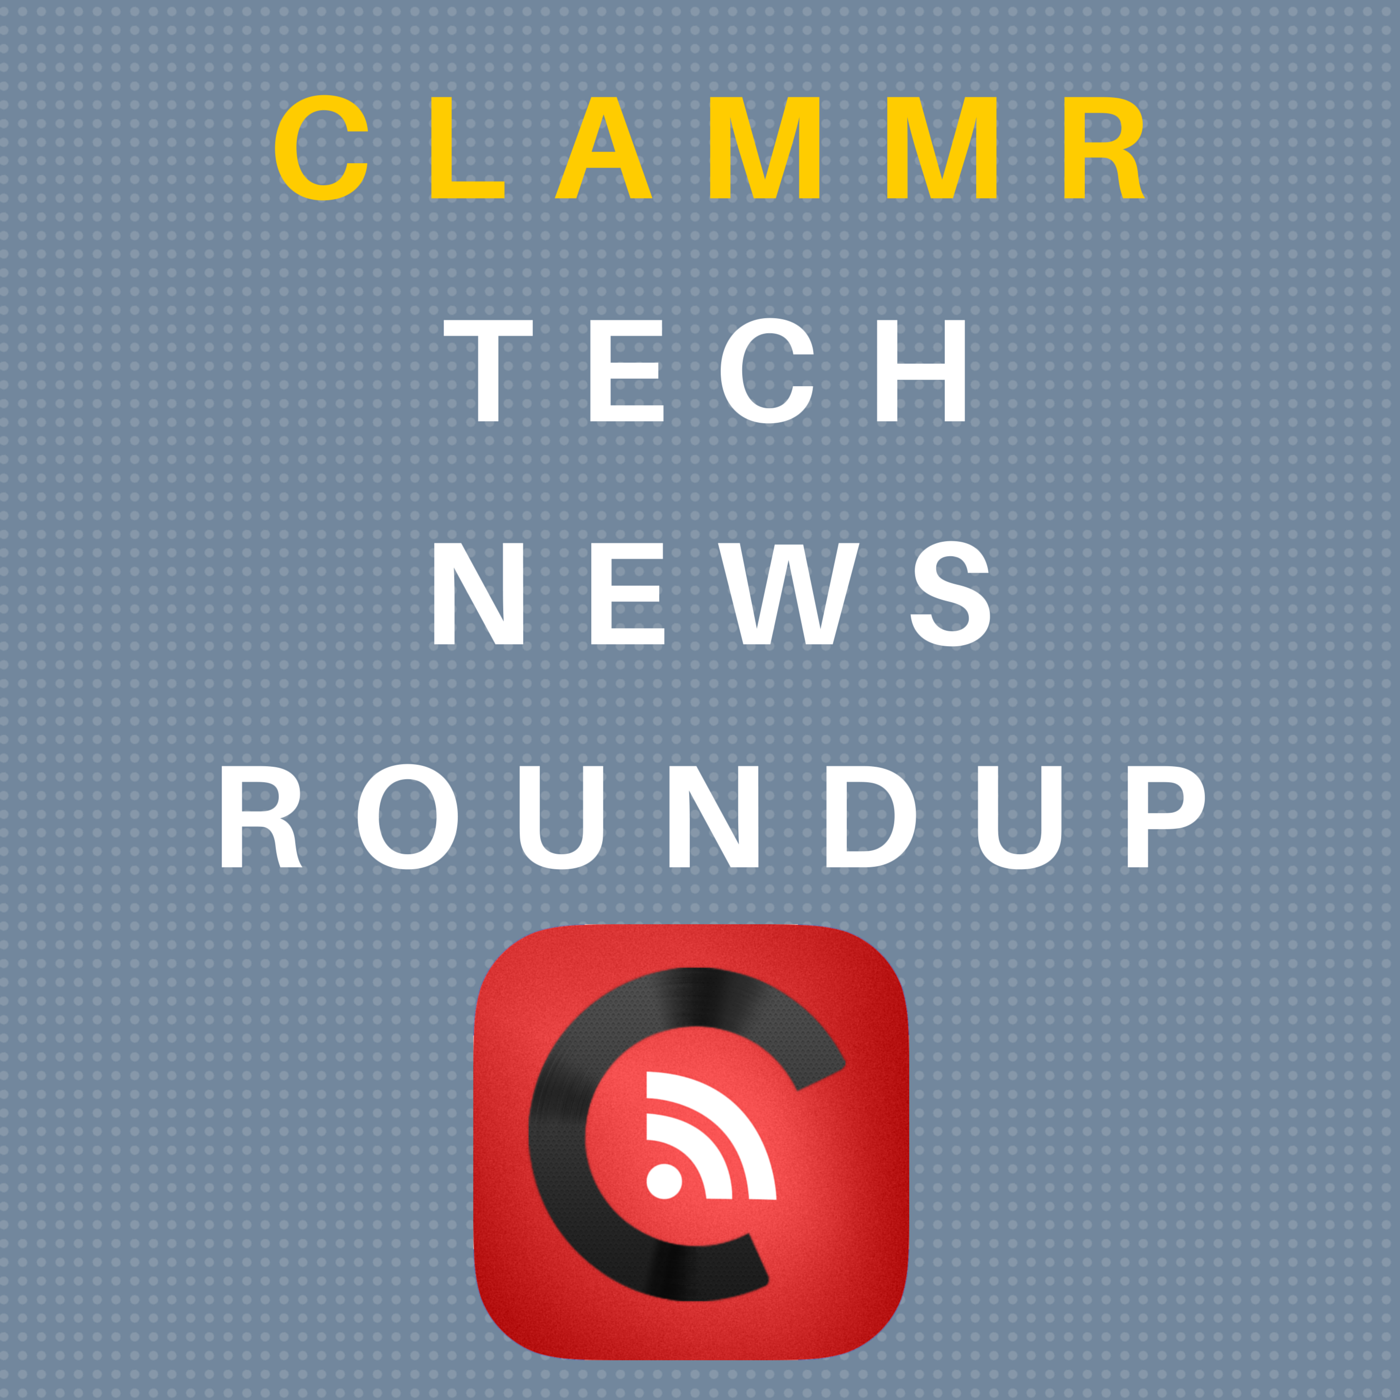 Clammr Technology News